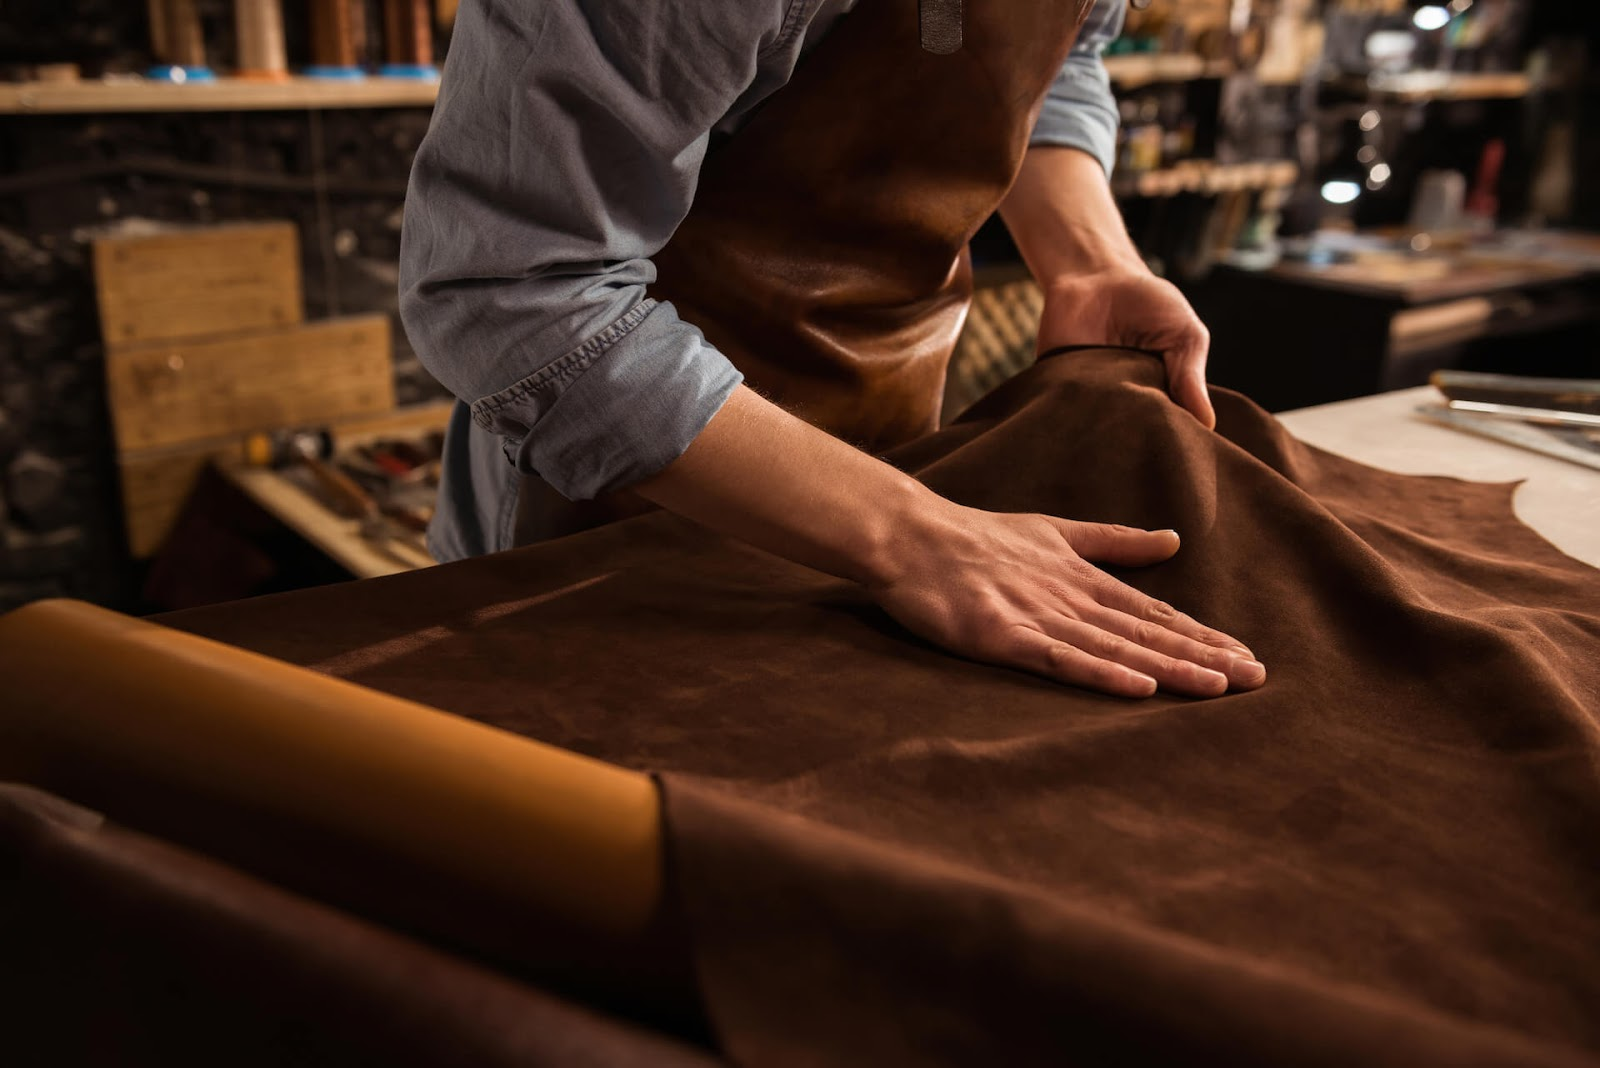 Man working with leather hides